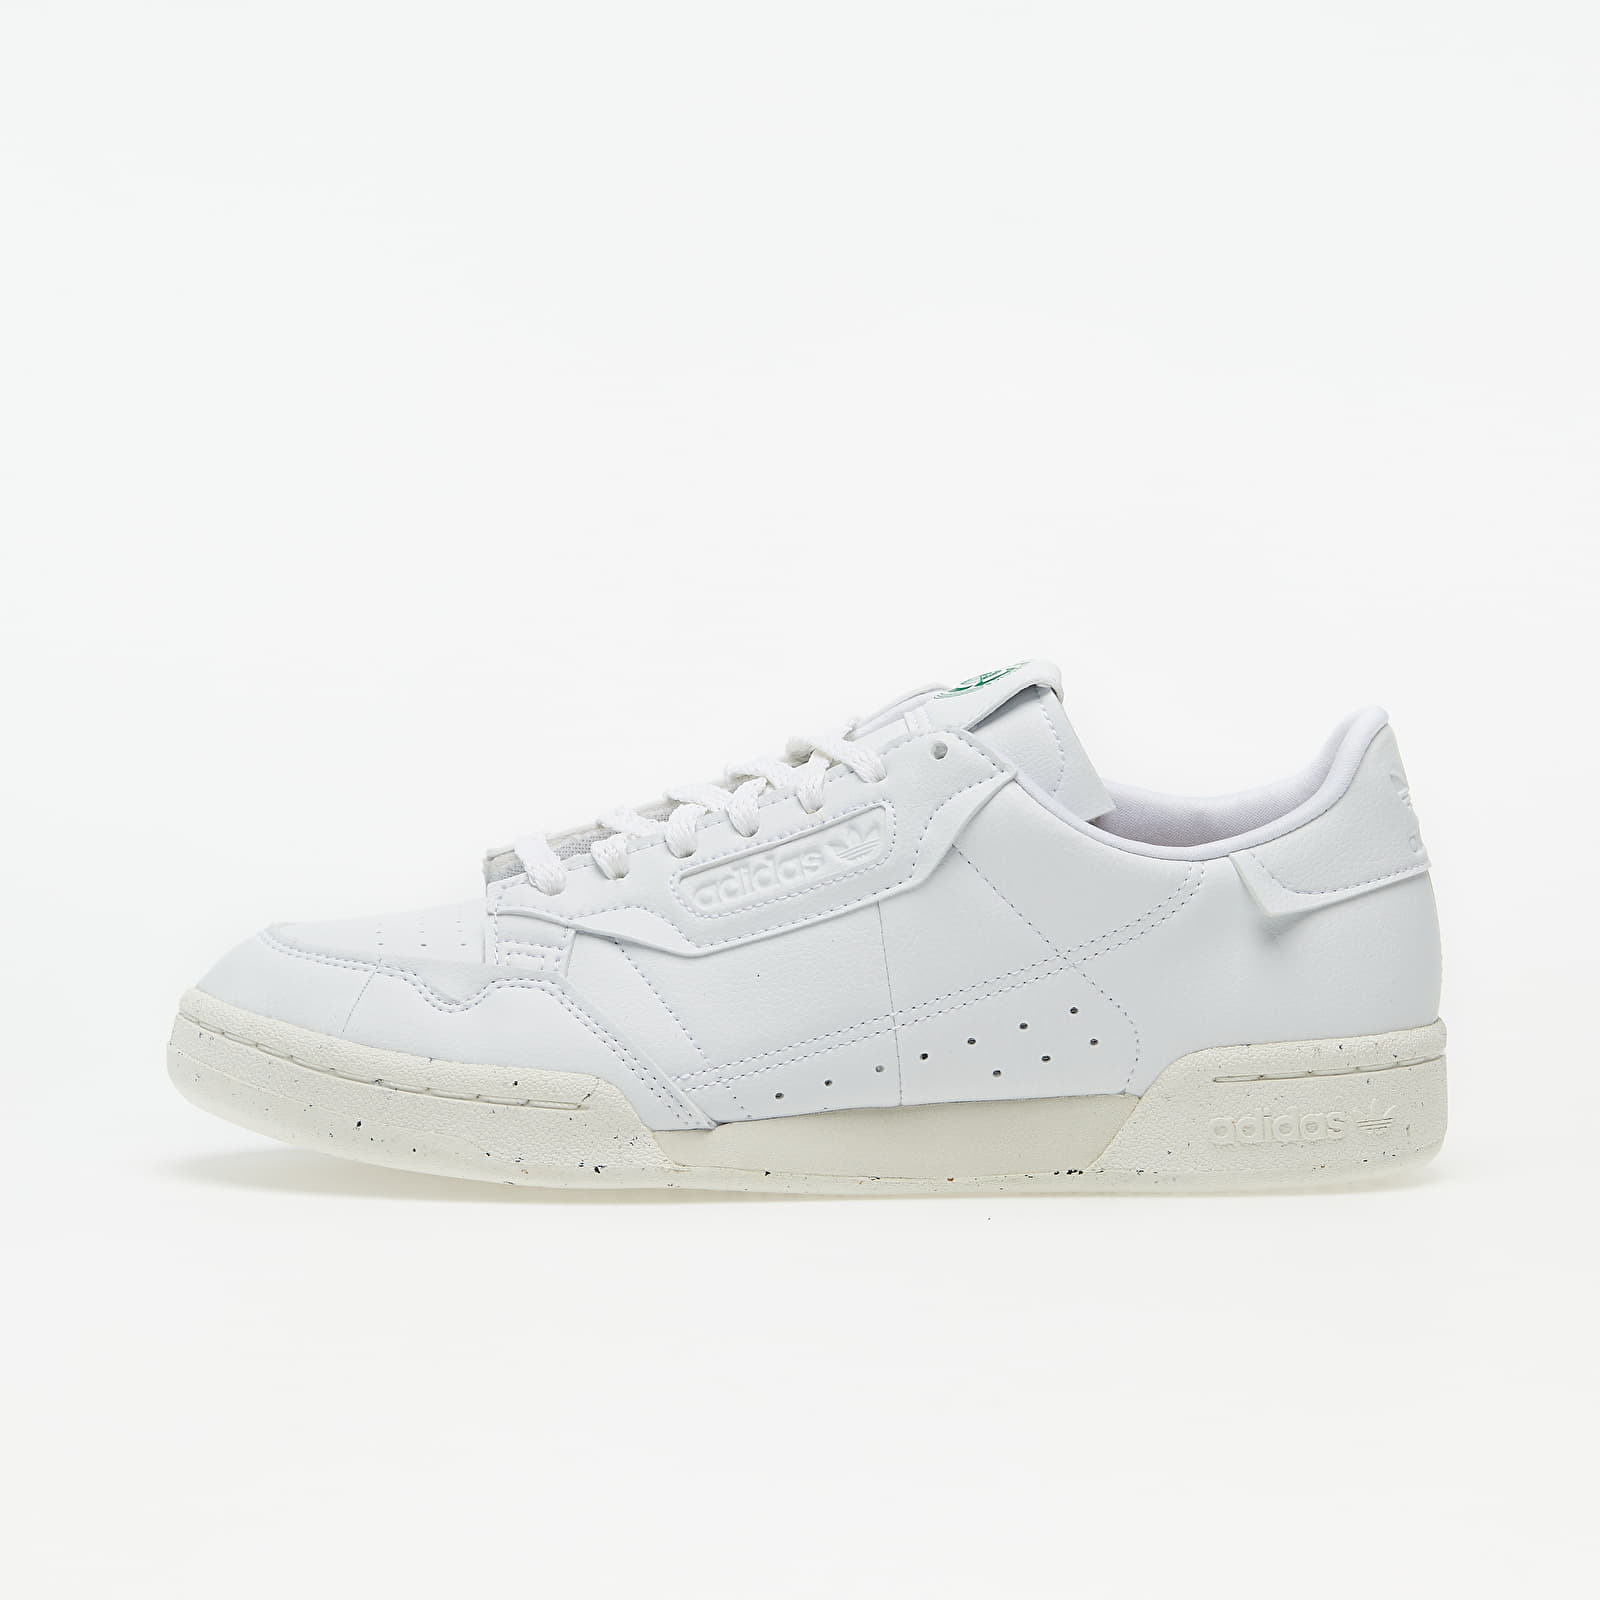 Men's shoes adidas Continental 80 Clean Classics Ftw White/ Off White/ Green